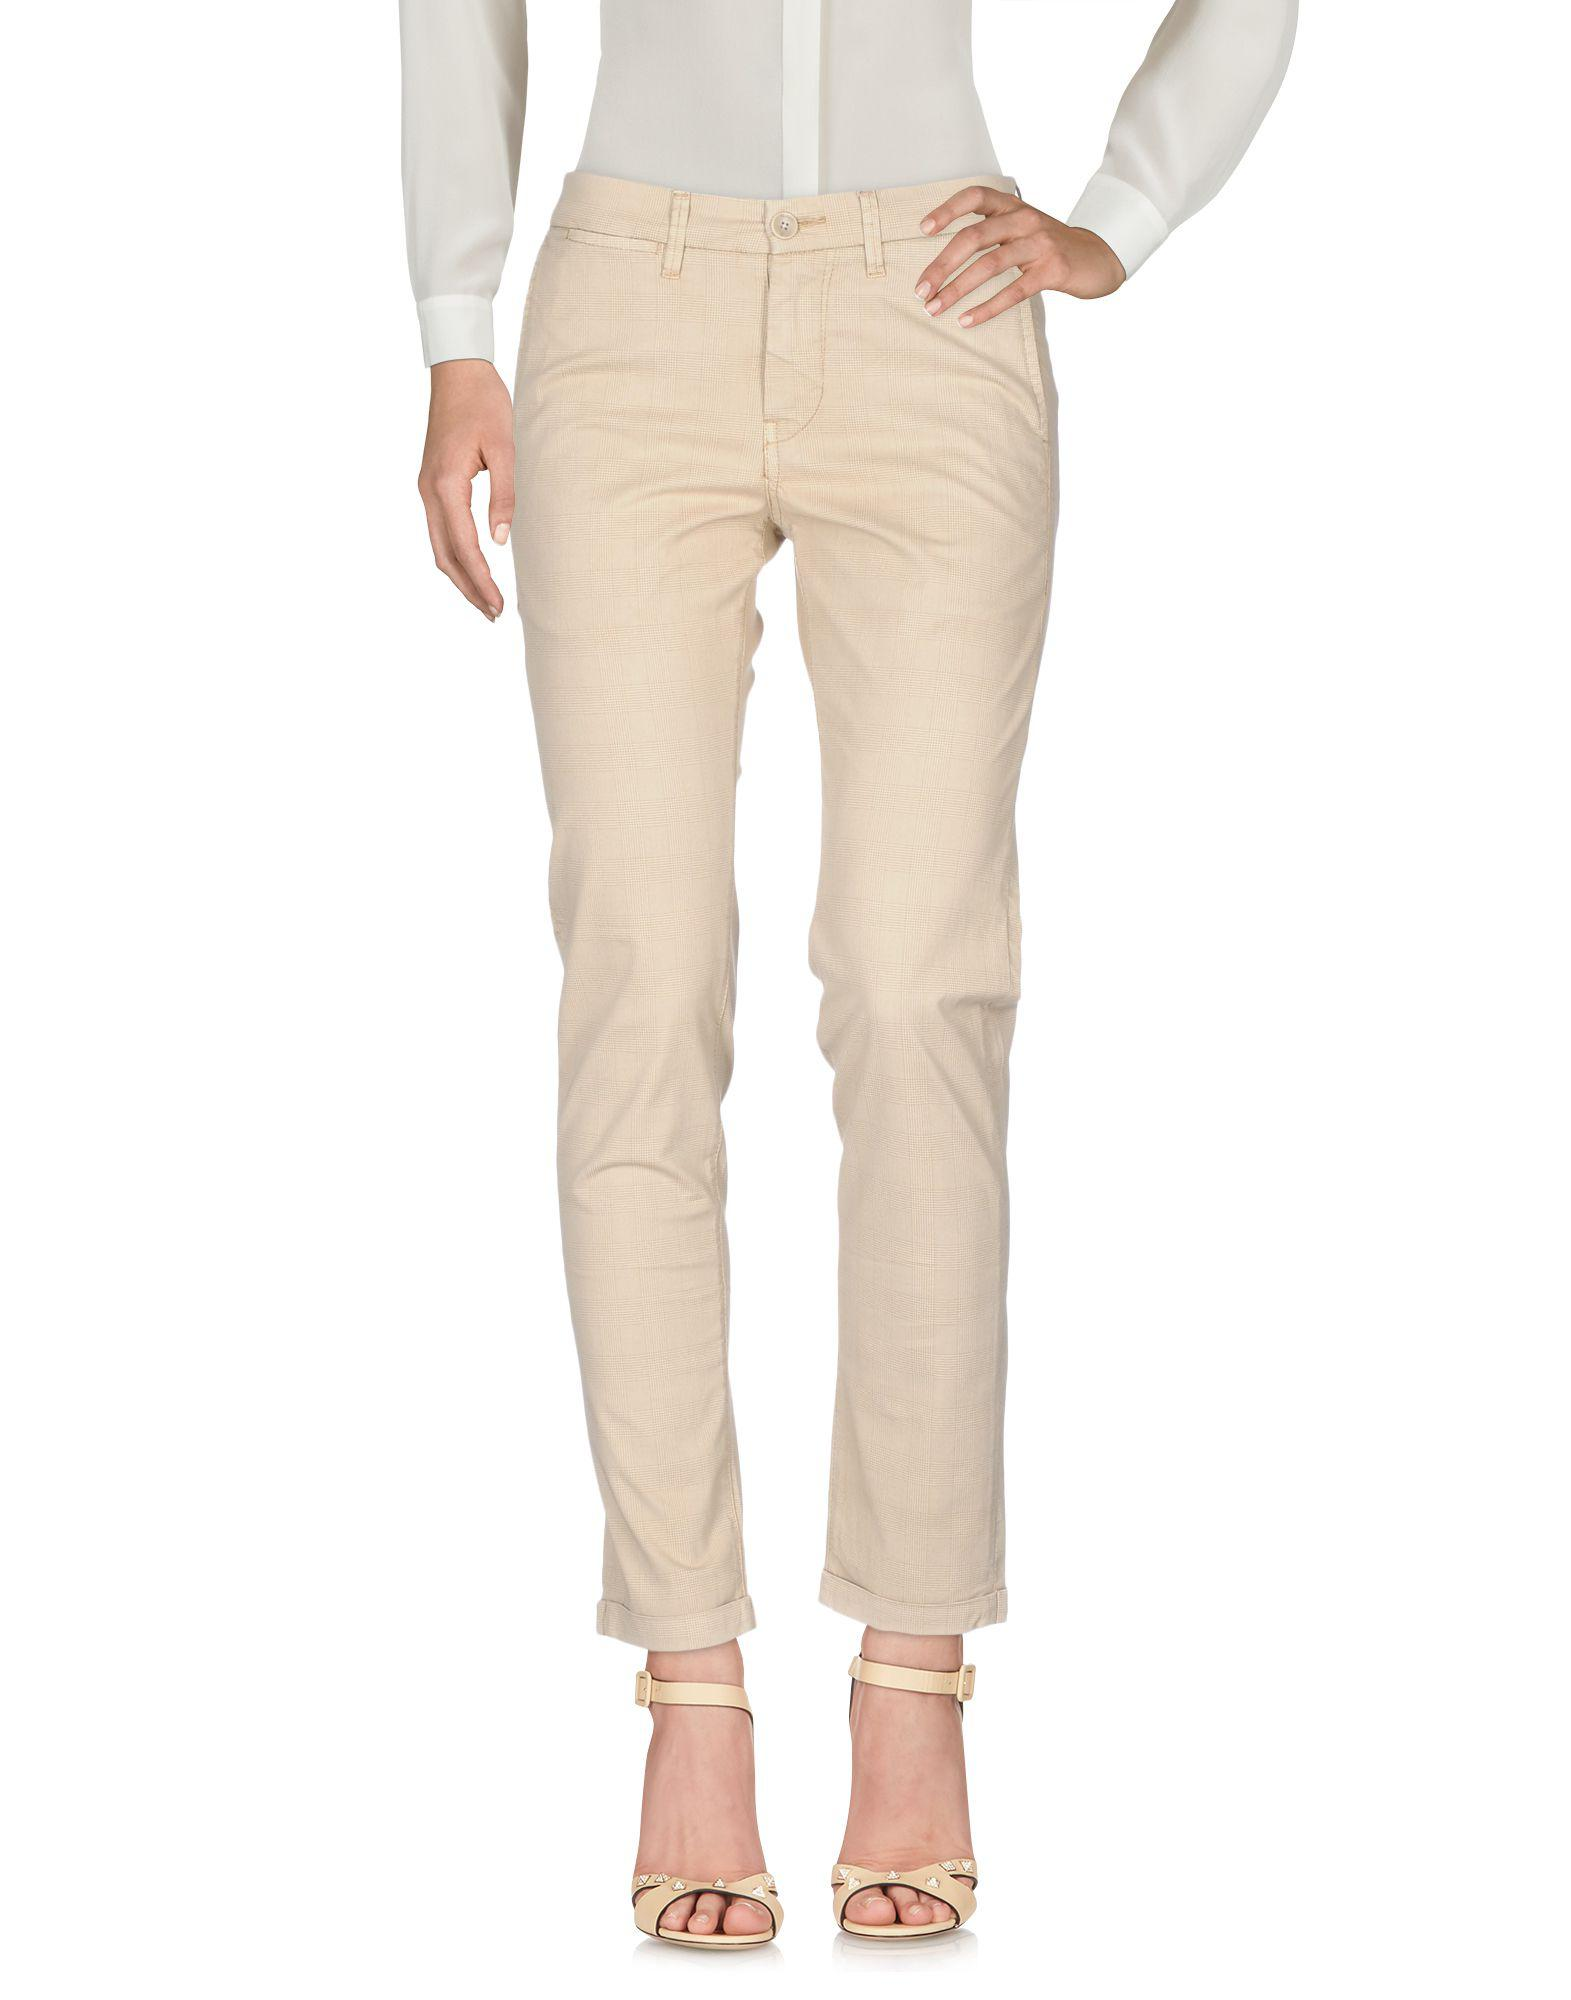 TROUSERS - Casual trousers Re-hash Clearance Top Quality FCU2J